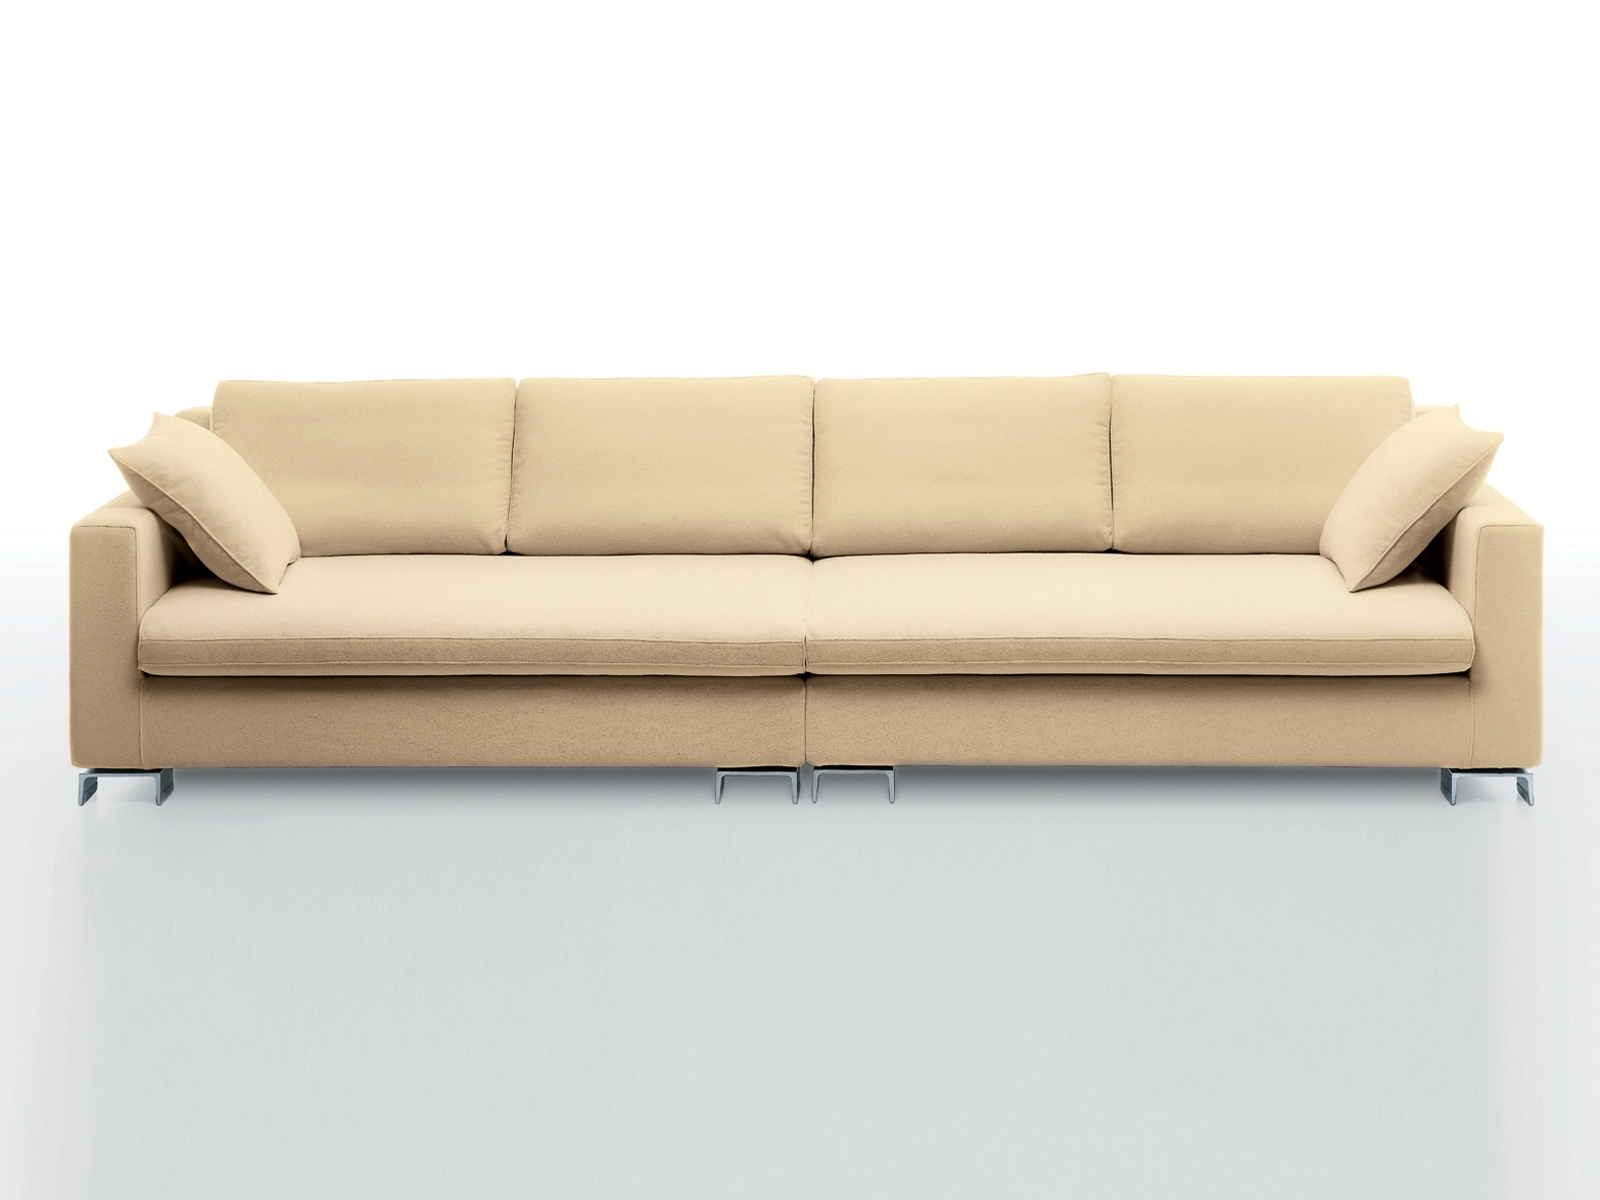 4 Seater Sofa For Large And Trendy Living Room pertaining to Widely used Large 4 Seater Sofas